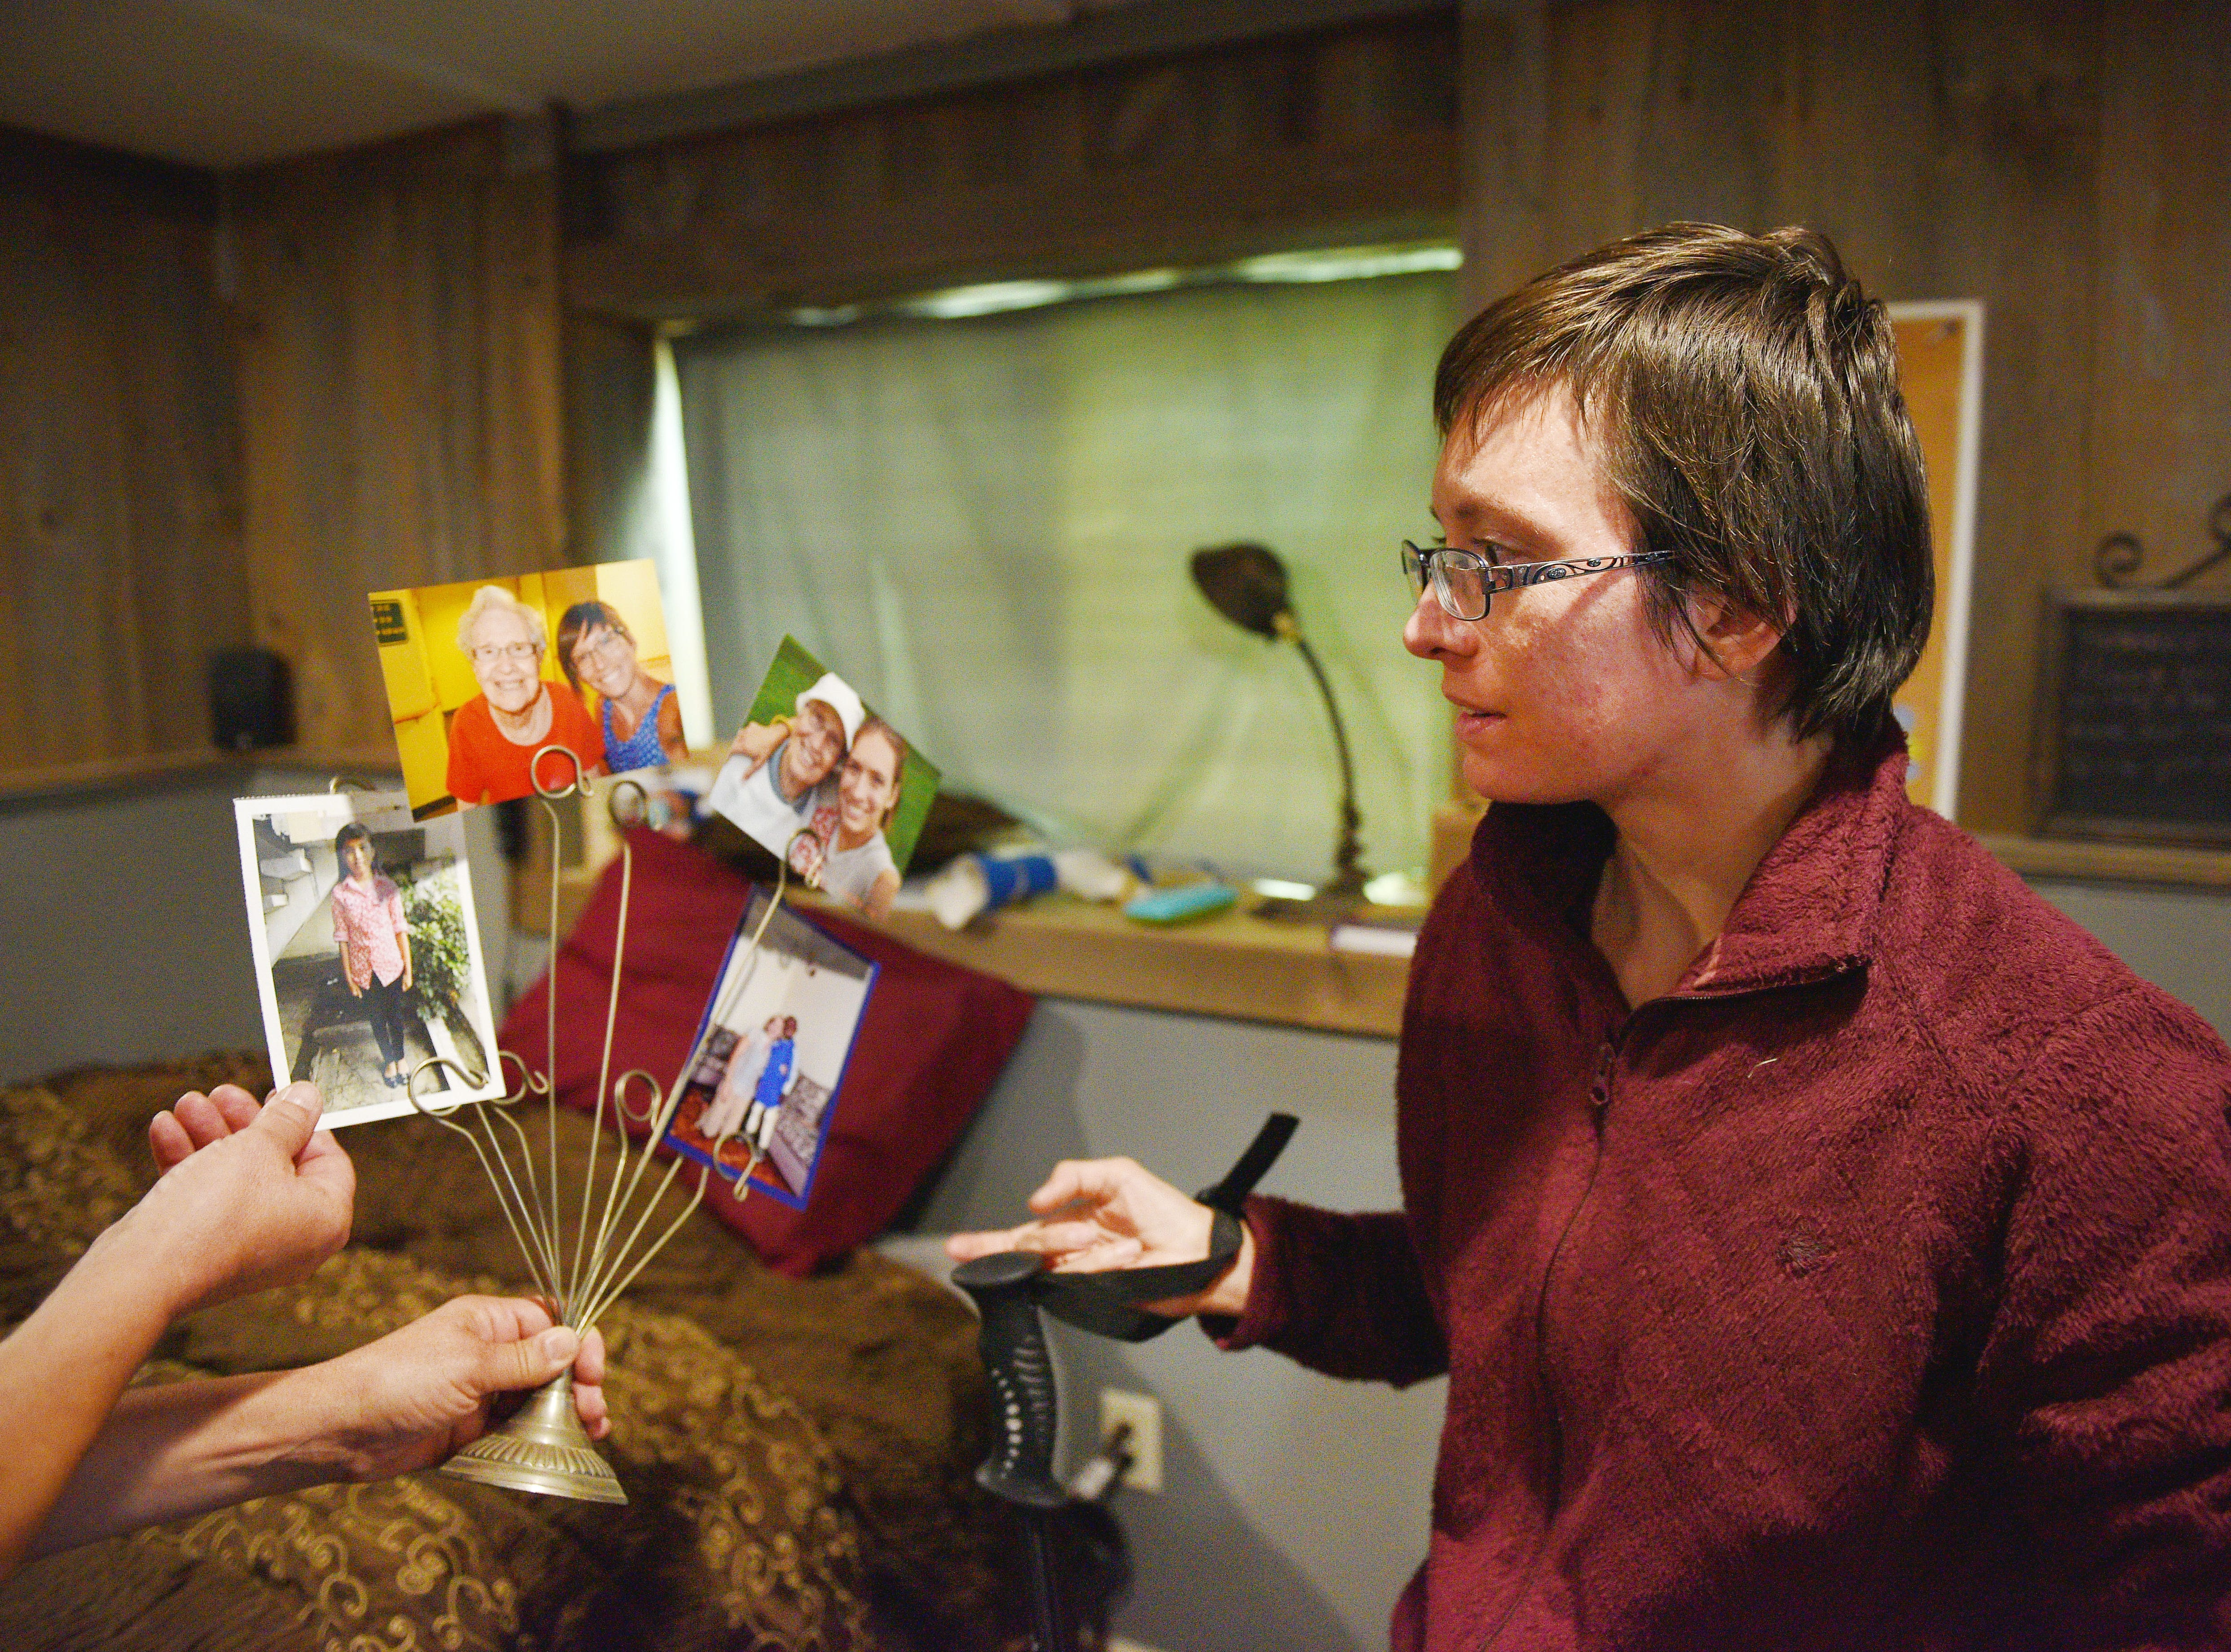 Ashley Van Hemert shows photos of children her and her late grandmother sponsor, Friday Sept. 28, at her home in Sioux Falls. Ashley said her grandmother and her sponsored children. When her grandmother died, she took over her grandmother's sponsorship.